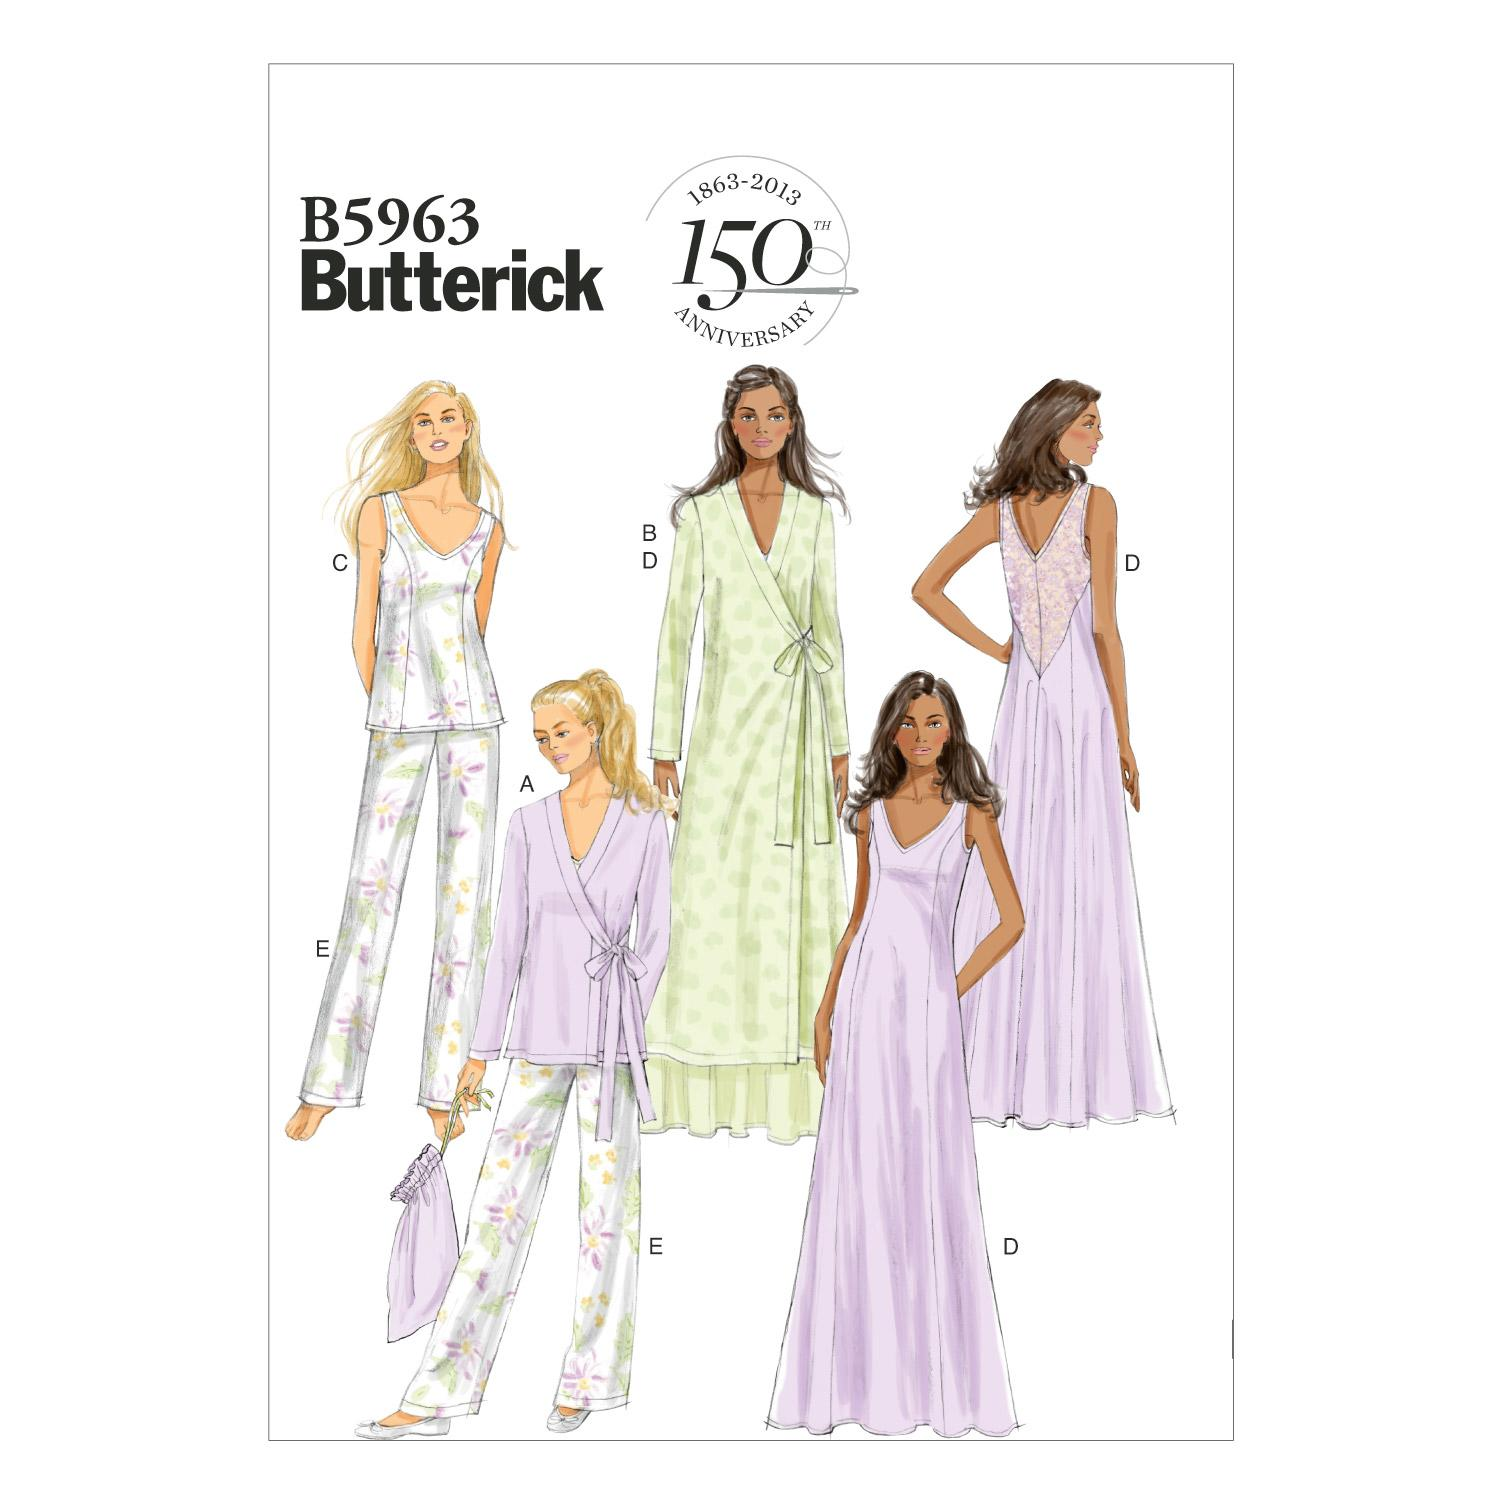 Butterick B5963 Misses' Robe, Top, Gown, Pants and Bag